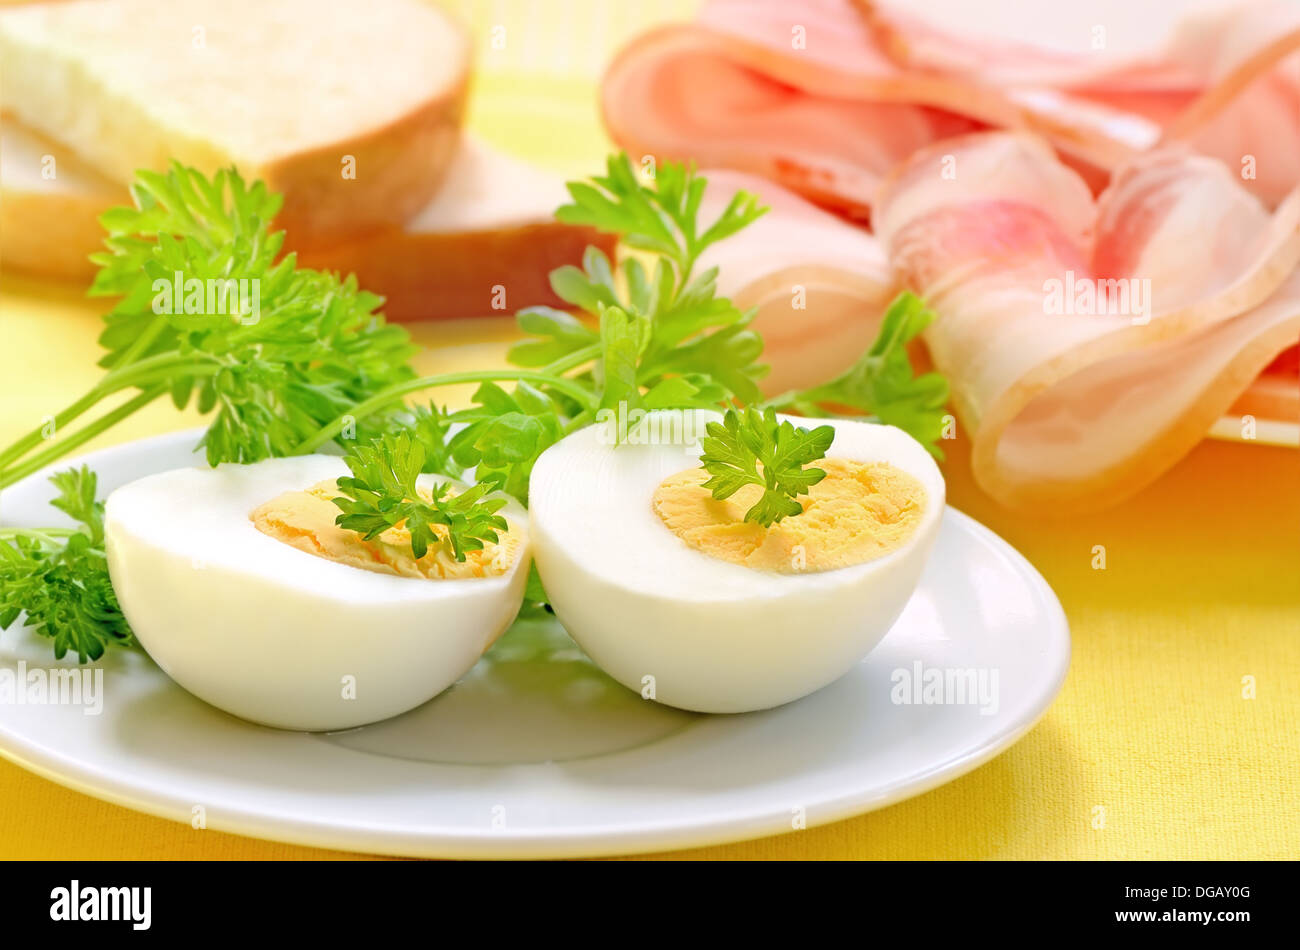 Breakfast with eggs and bacon on white plate - Stock Image